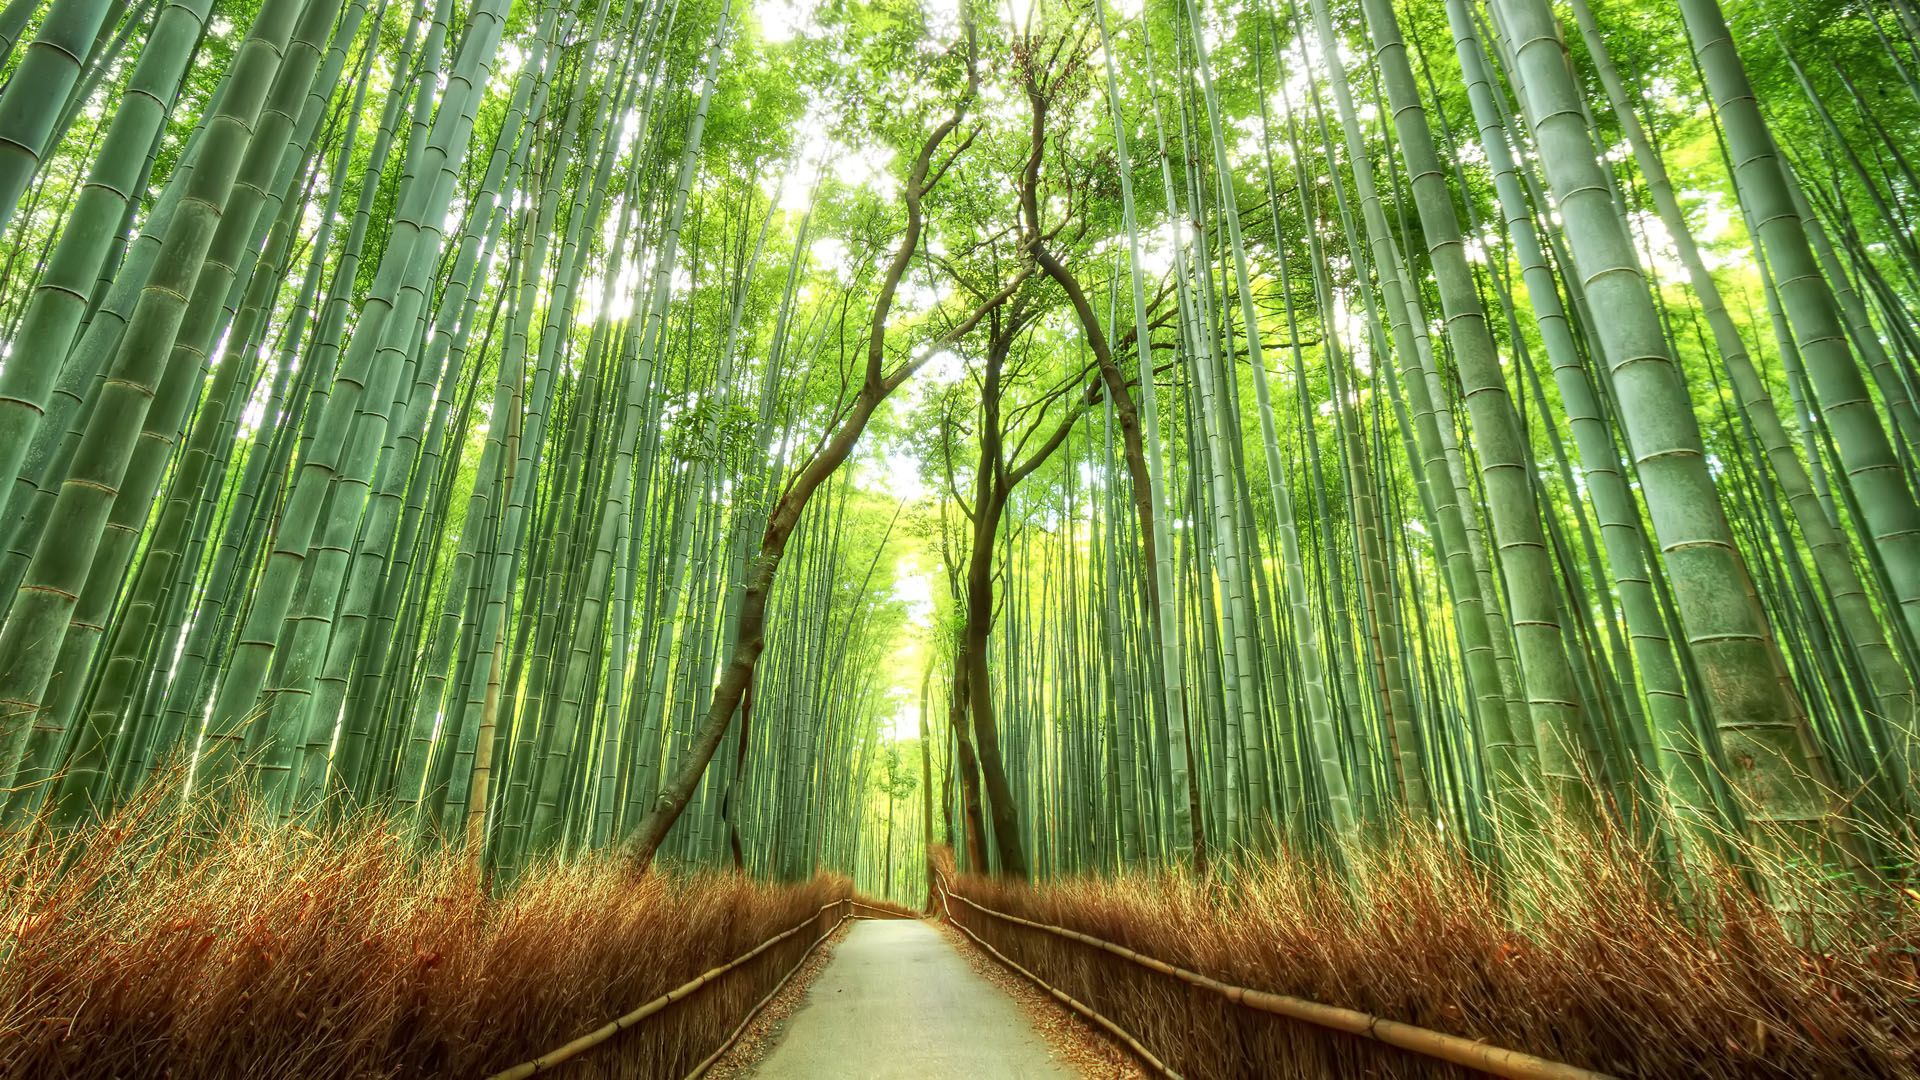 Kyoto Bamboo Forest 1920x1080 R Wallpaper Scenery Wallpaper Bamboo Forest Japan Forest Wallpaper